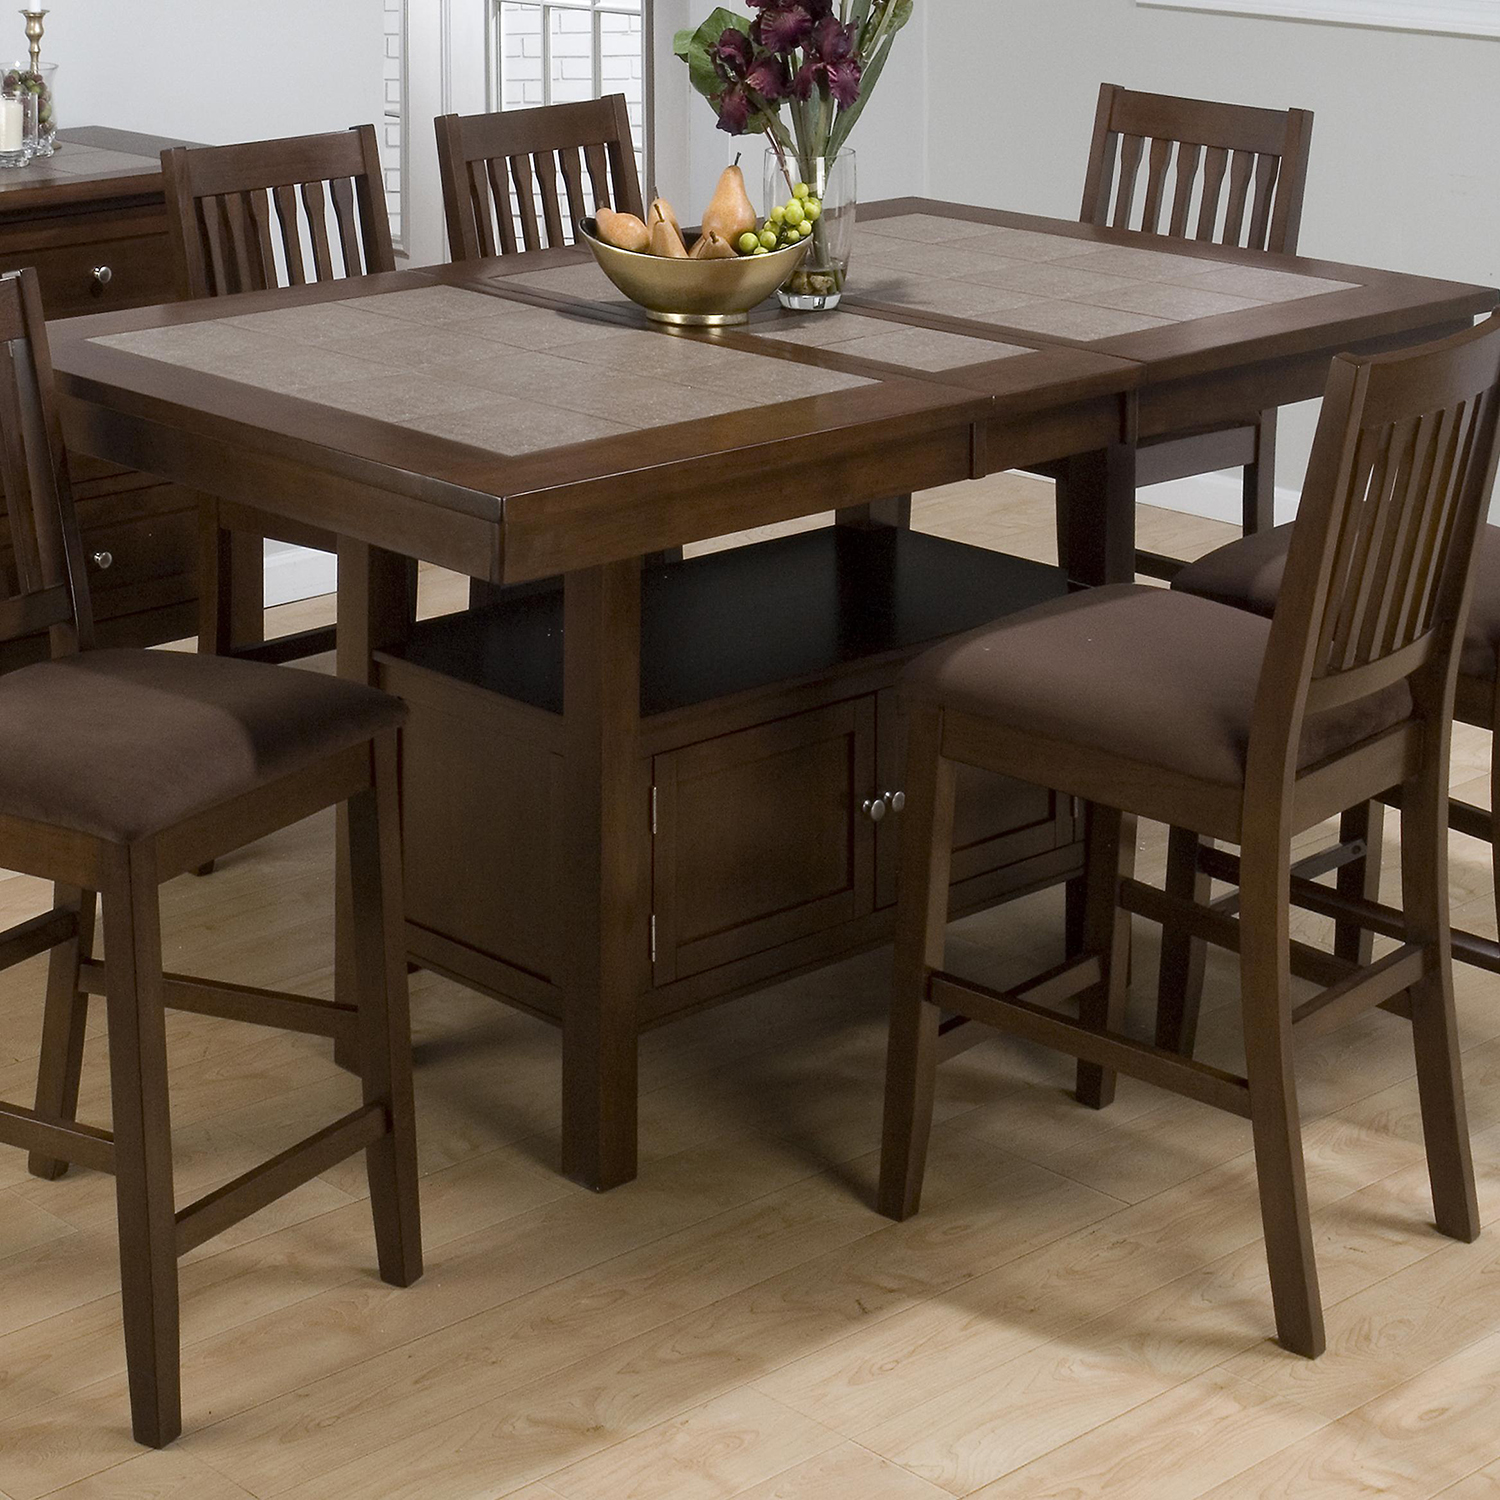 Caleb 7 Pieces Counter Dining Set - Butterfly Leaf, Brown - JOFR-976-72TBKT-BS671KD-SET